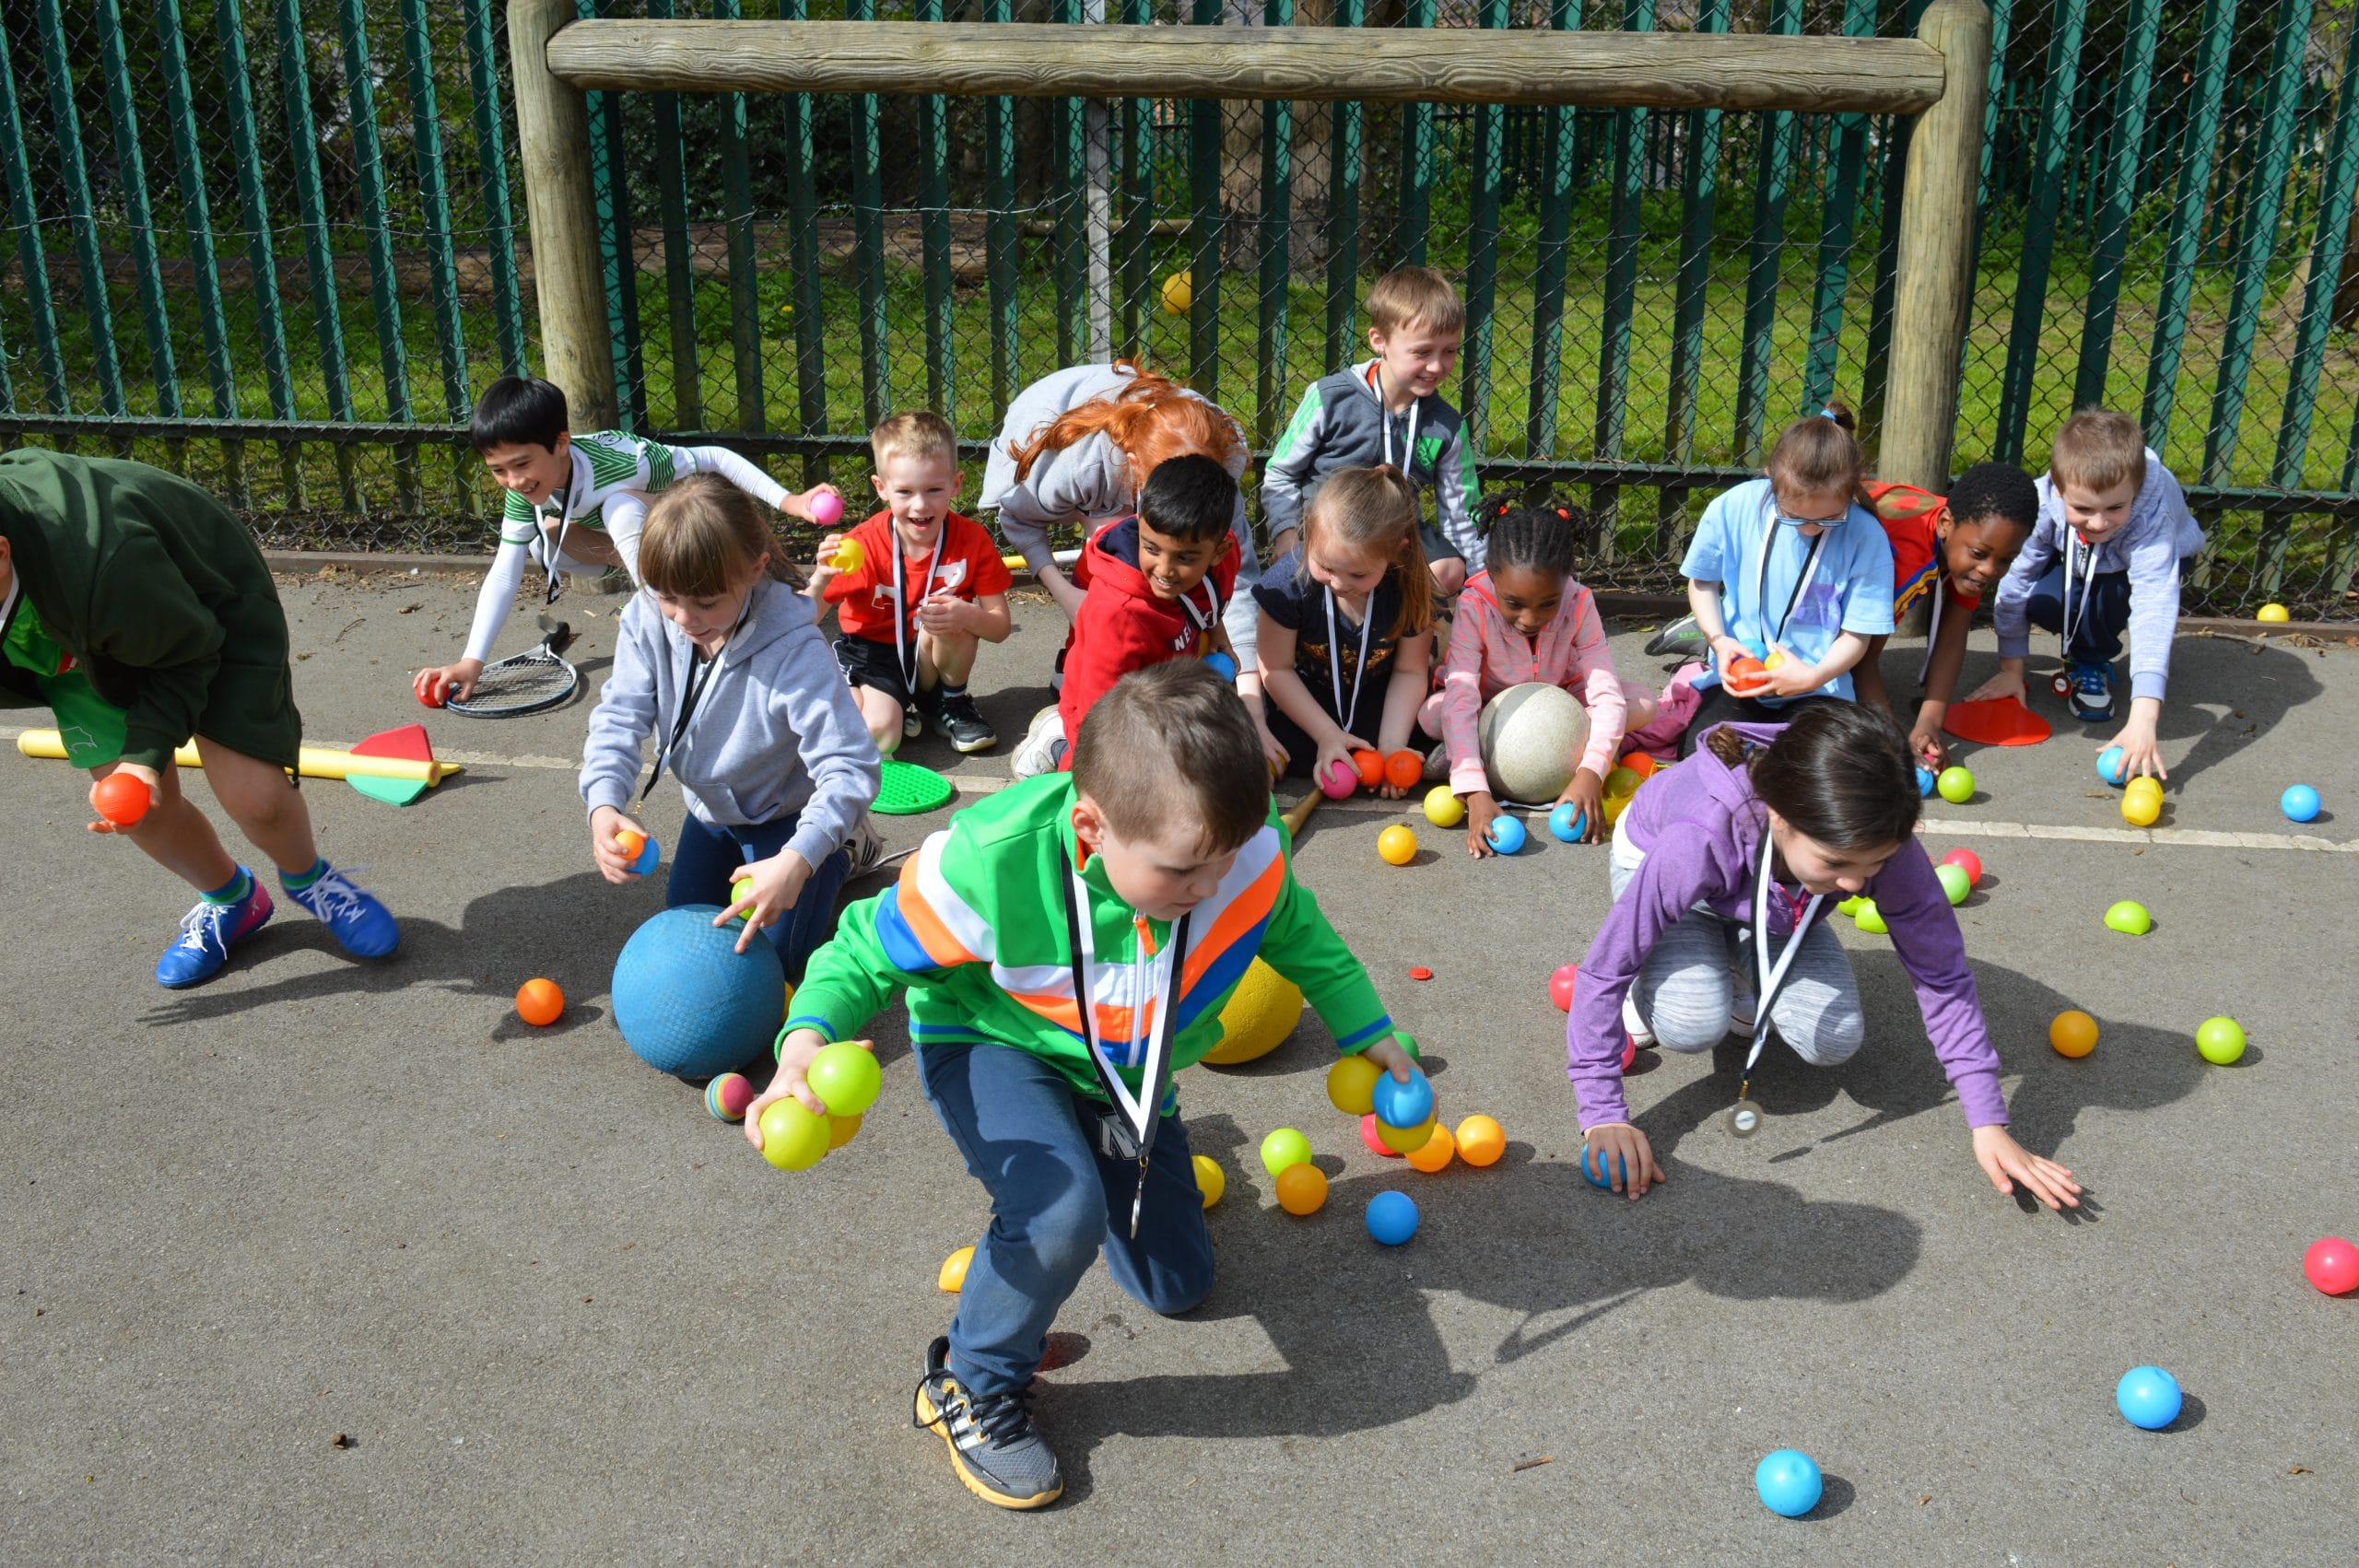 Children enjoying afterschool fun